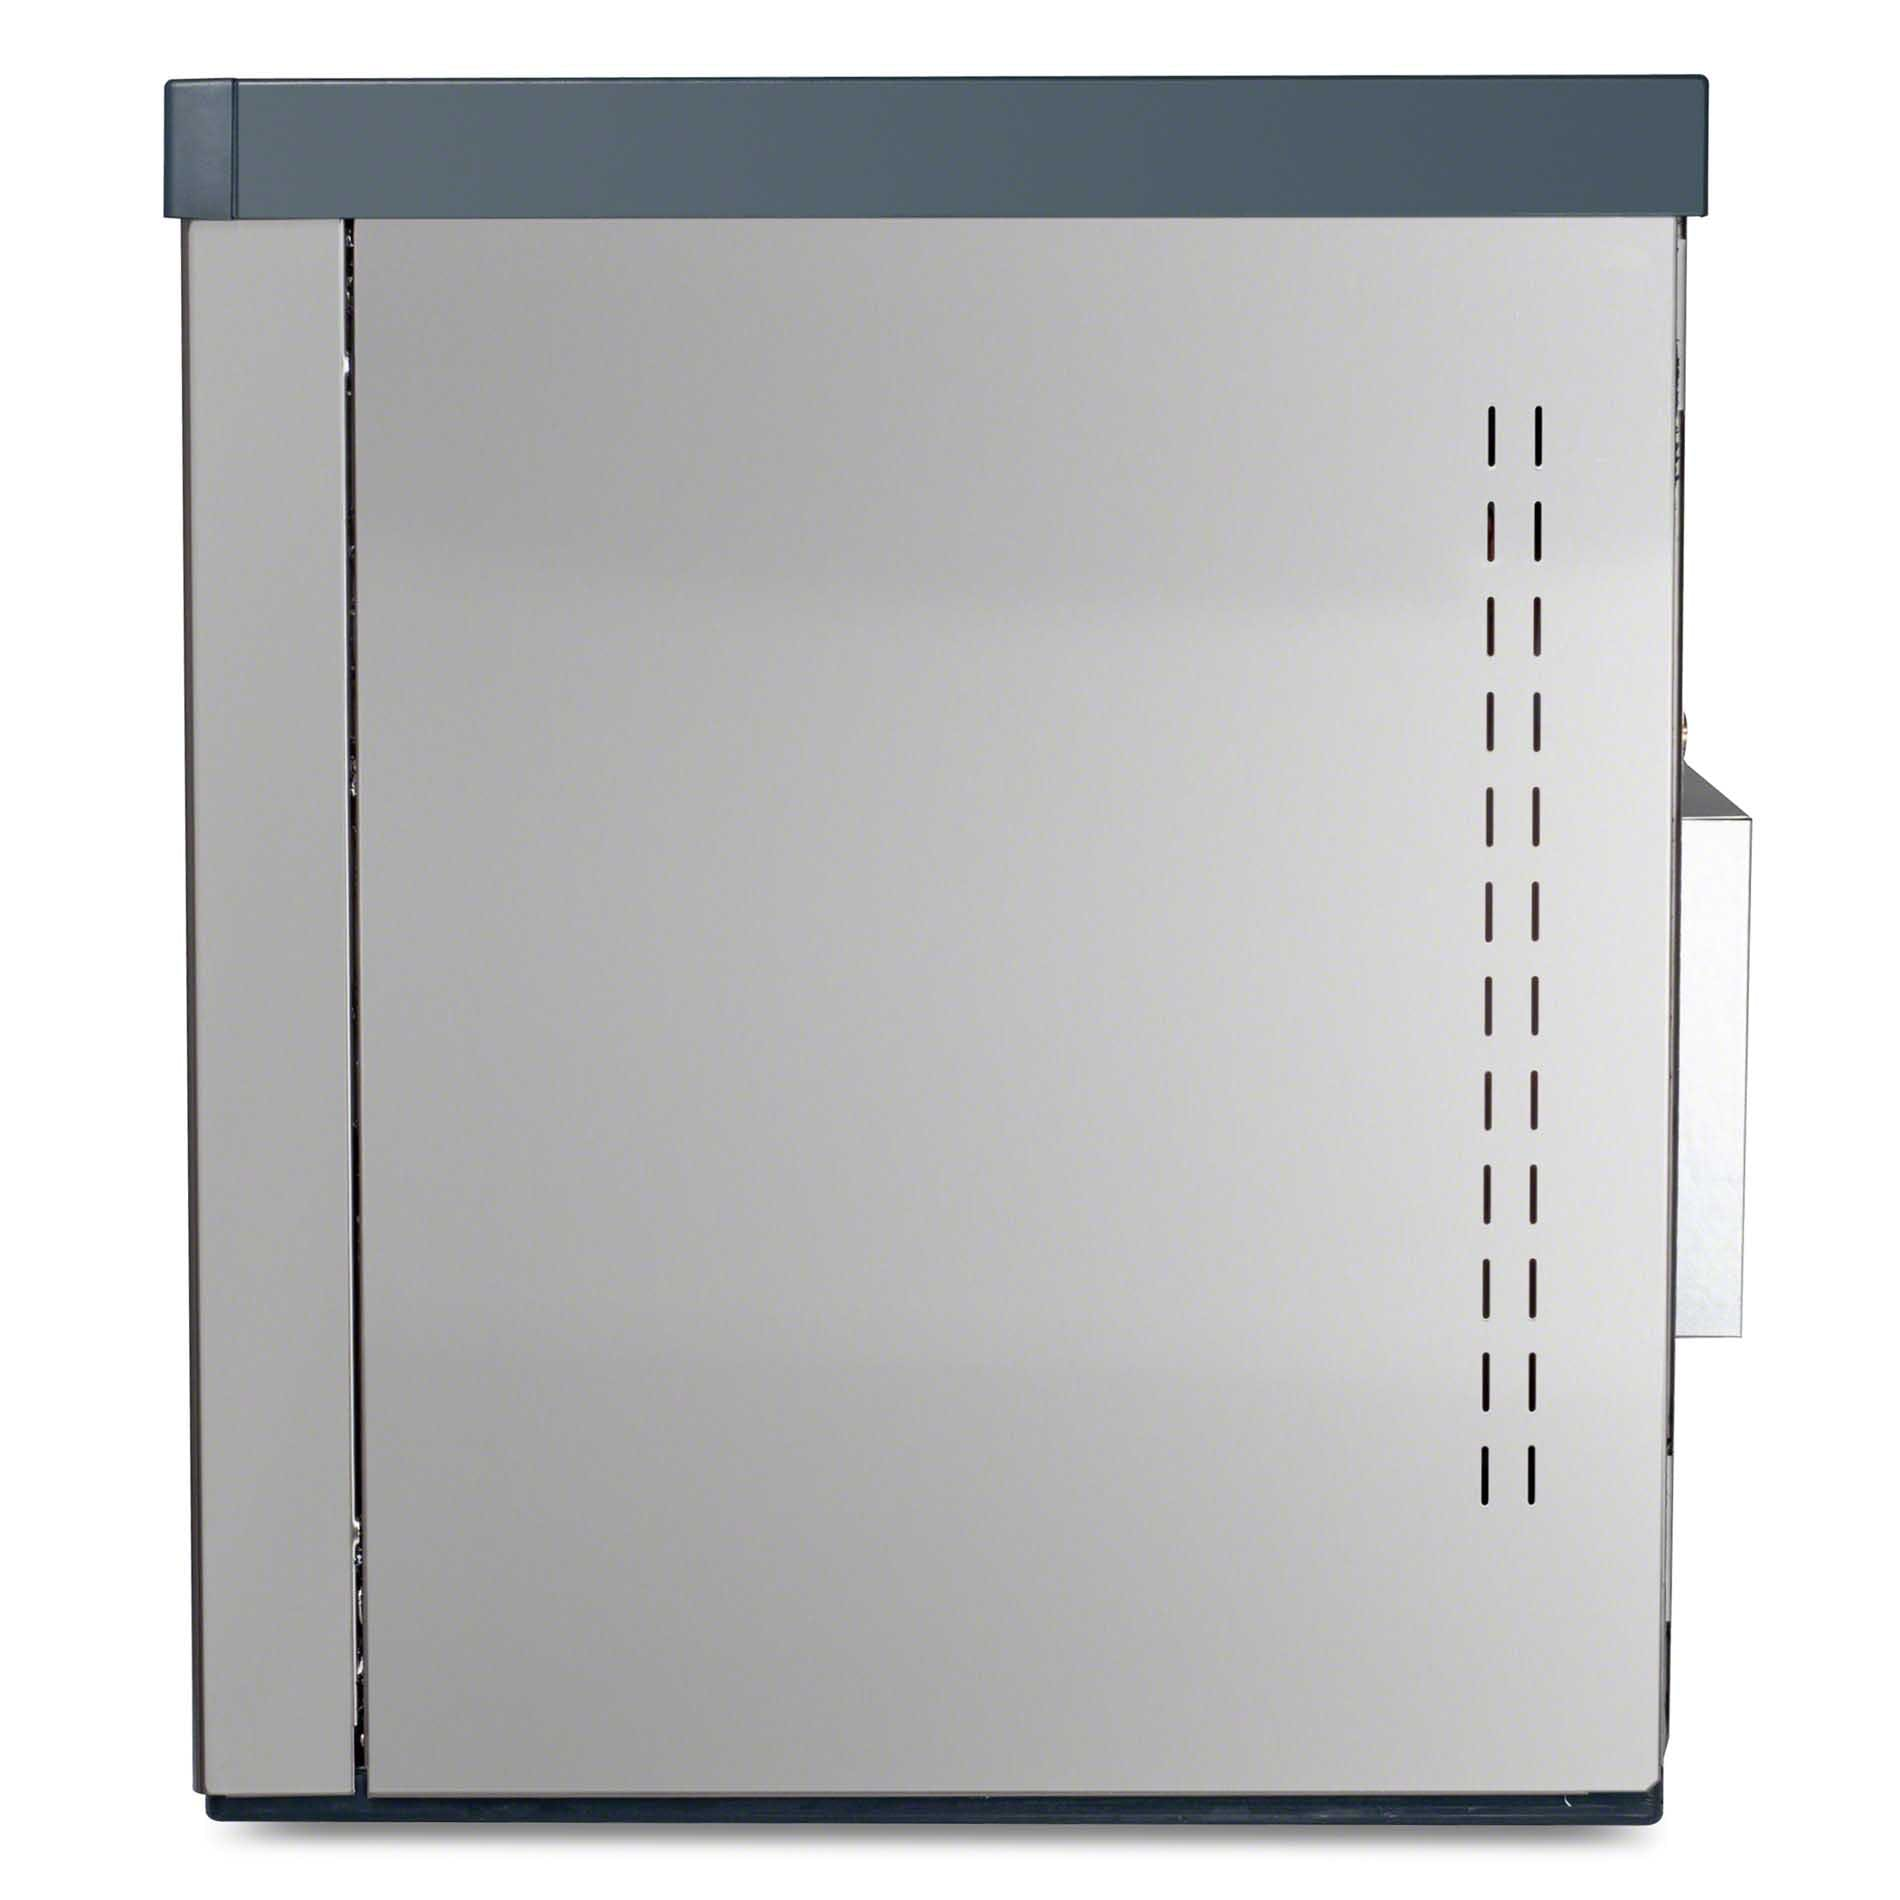 Scotsman - C2148MR-32A 2248 lb Full Size Cube Ice Machine - Prodigy Series Ice machine sold by Food Service Warehouse